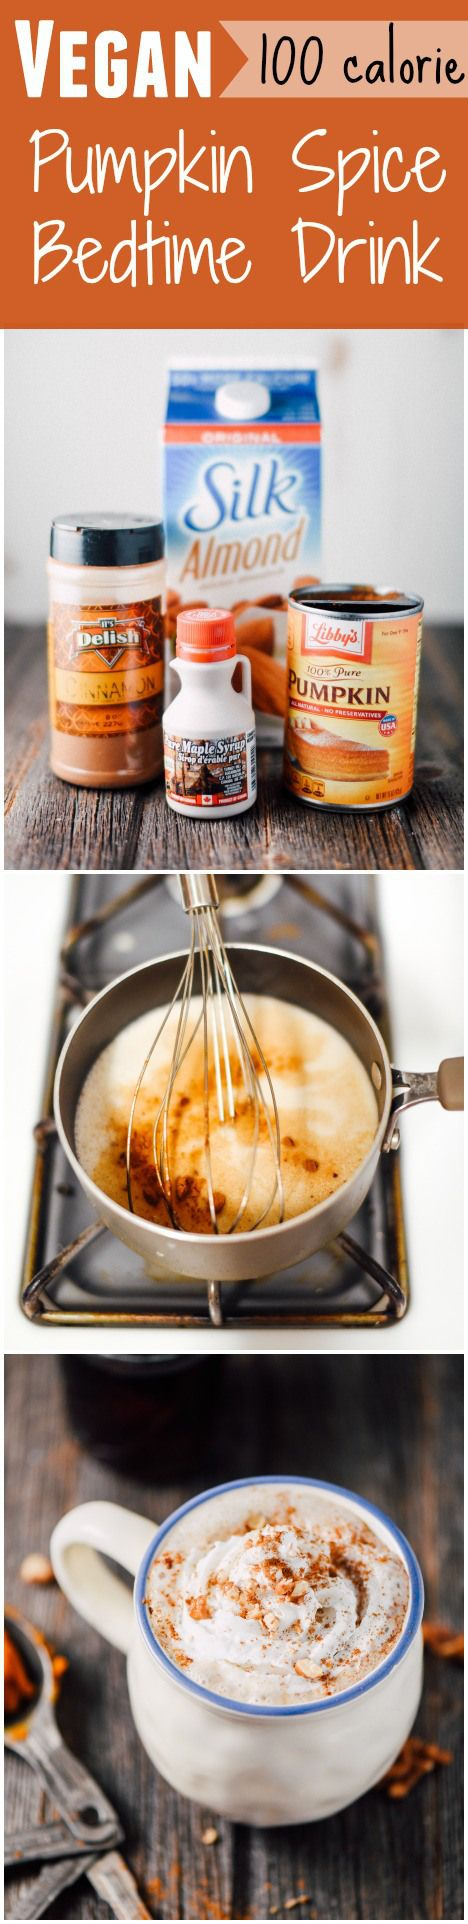 Vegan Pumpkin Spice Bedtime Drink- 100 calories and only 4 ingredients! #fall…